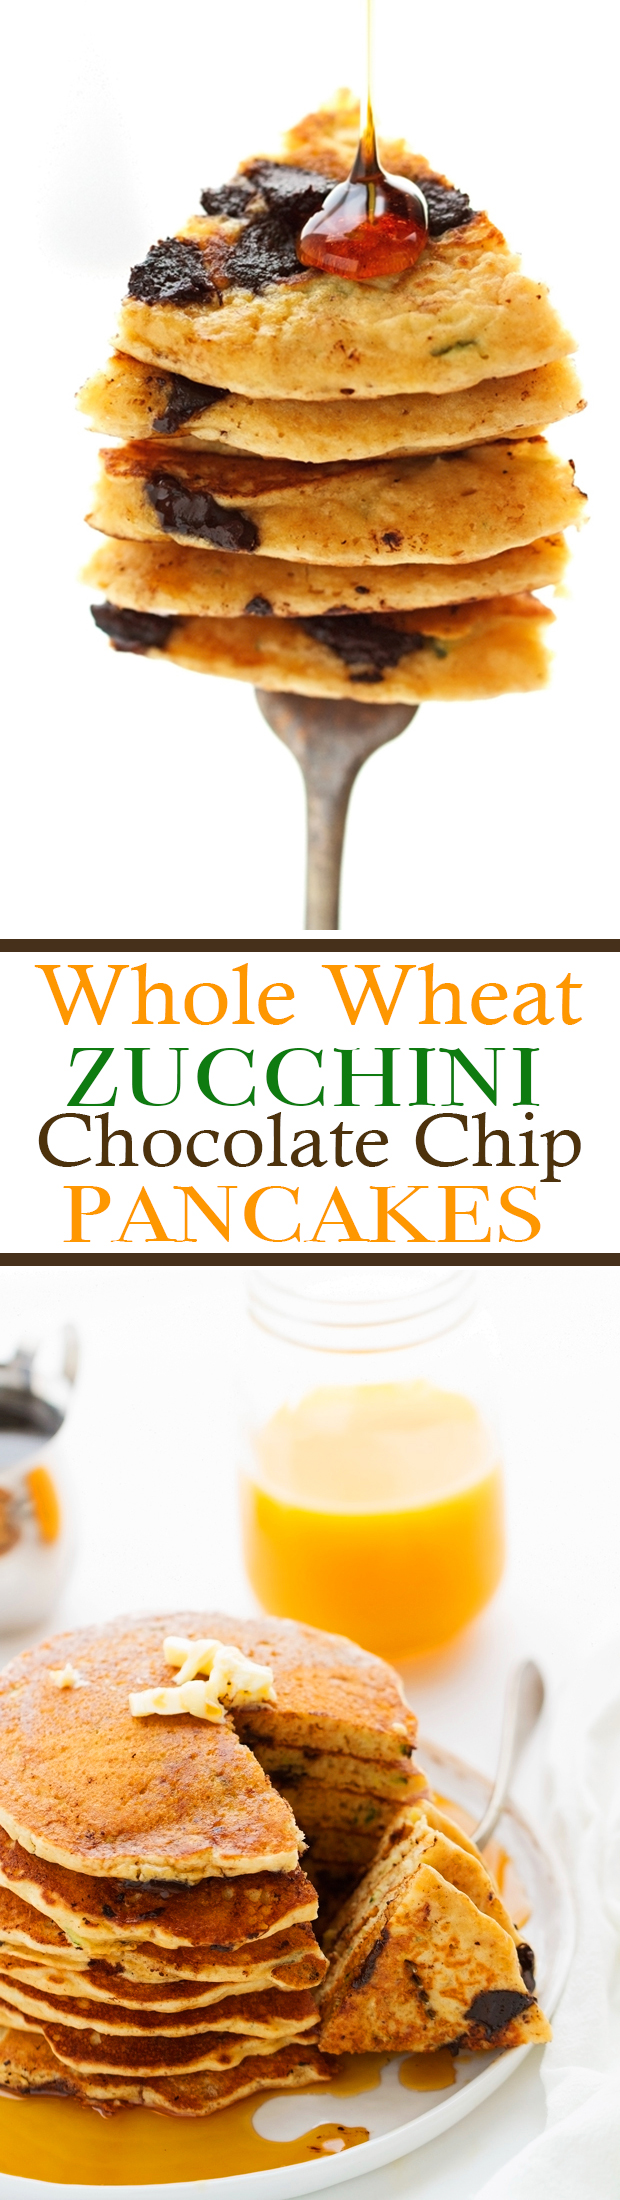 Fluffy Whole Wheat Zucchini Pancakes with Chocolate Chips - A healthier breakfast option loaded with zucchini and just a hint of chocolate chips! #chocolatechippancakes #healthypancakes #wholewheatpancakes   Littlespicejar.com @Littlespicejar